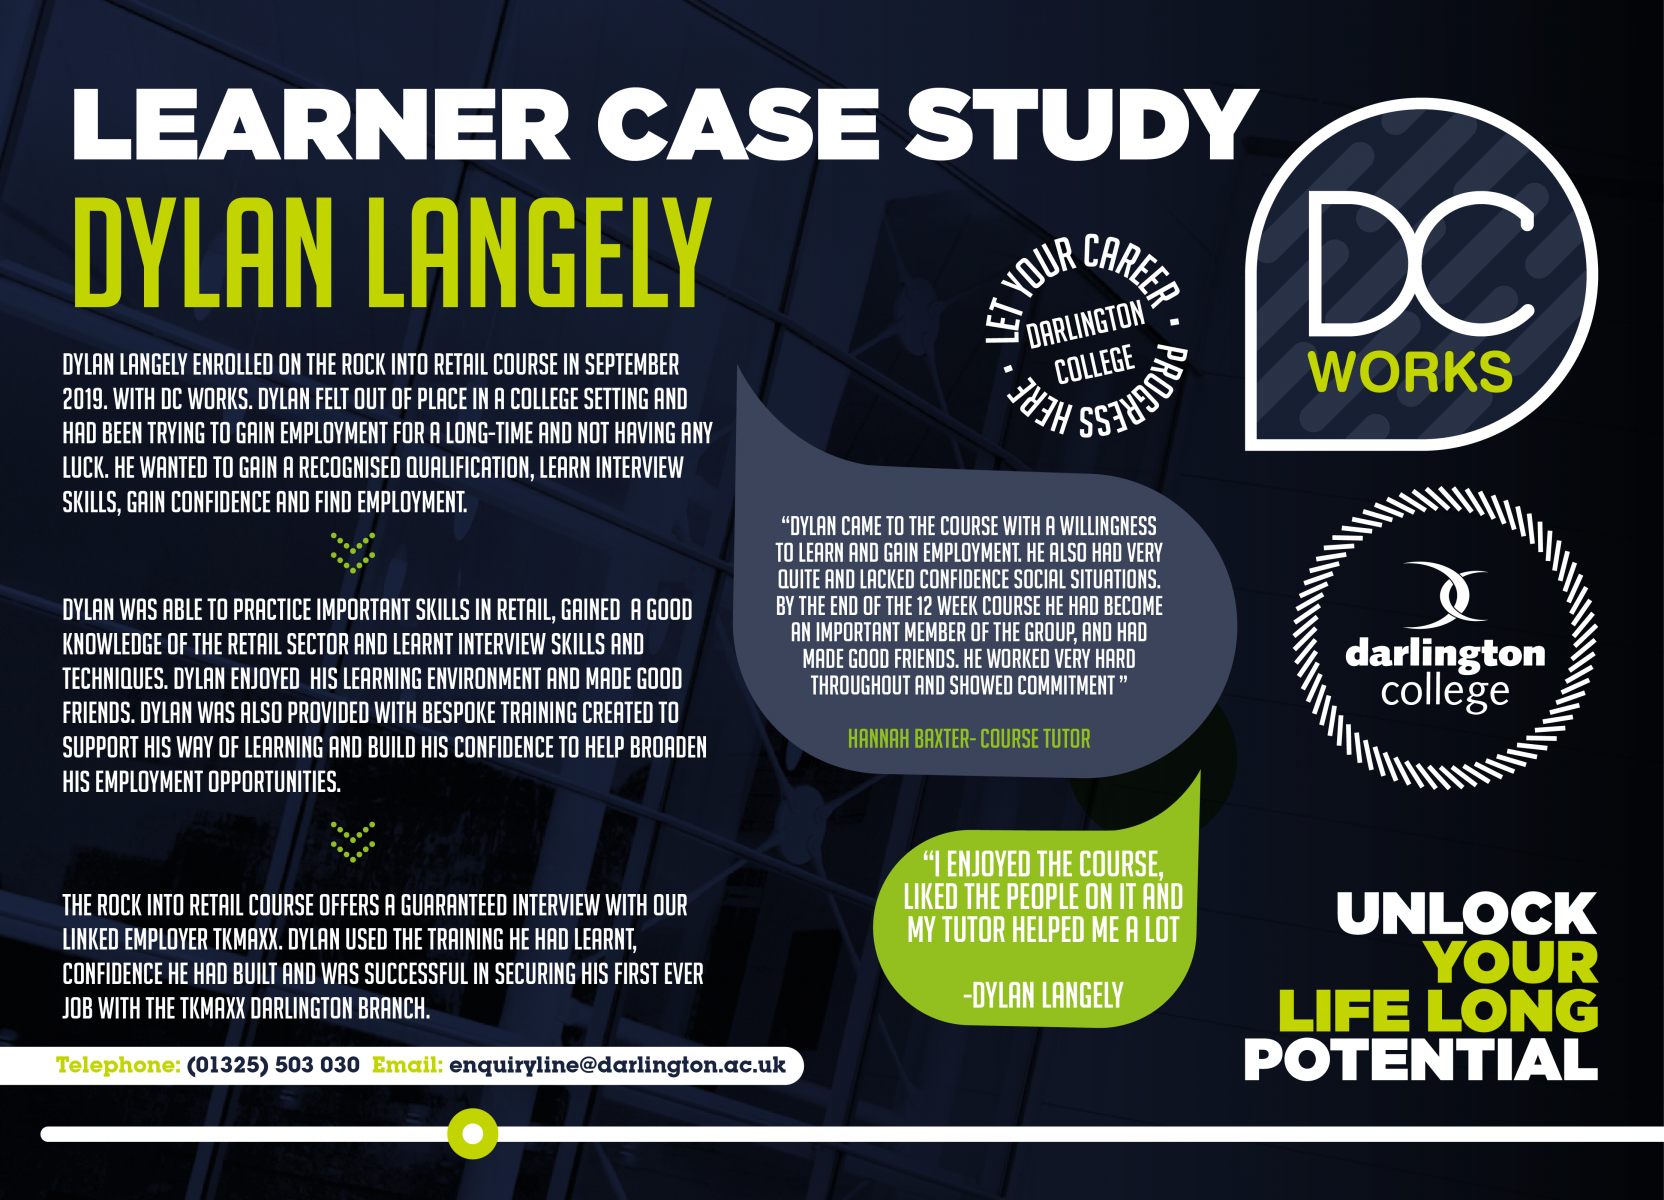 Dylan-Langely-Case-Study-01